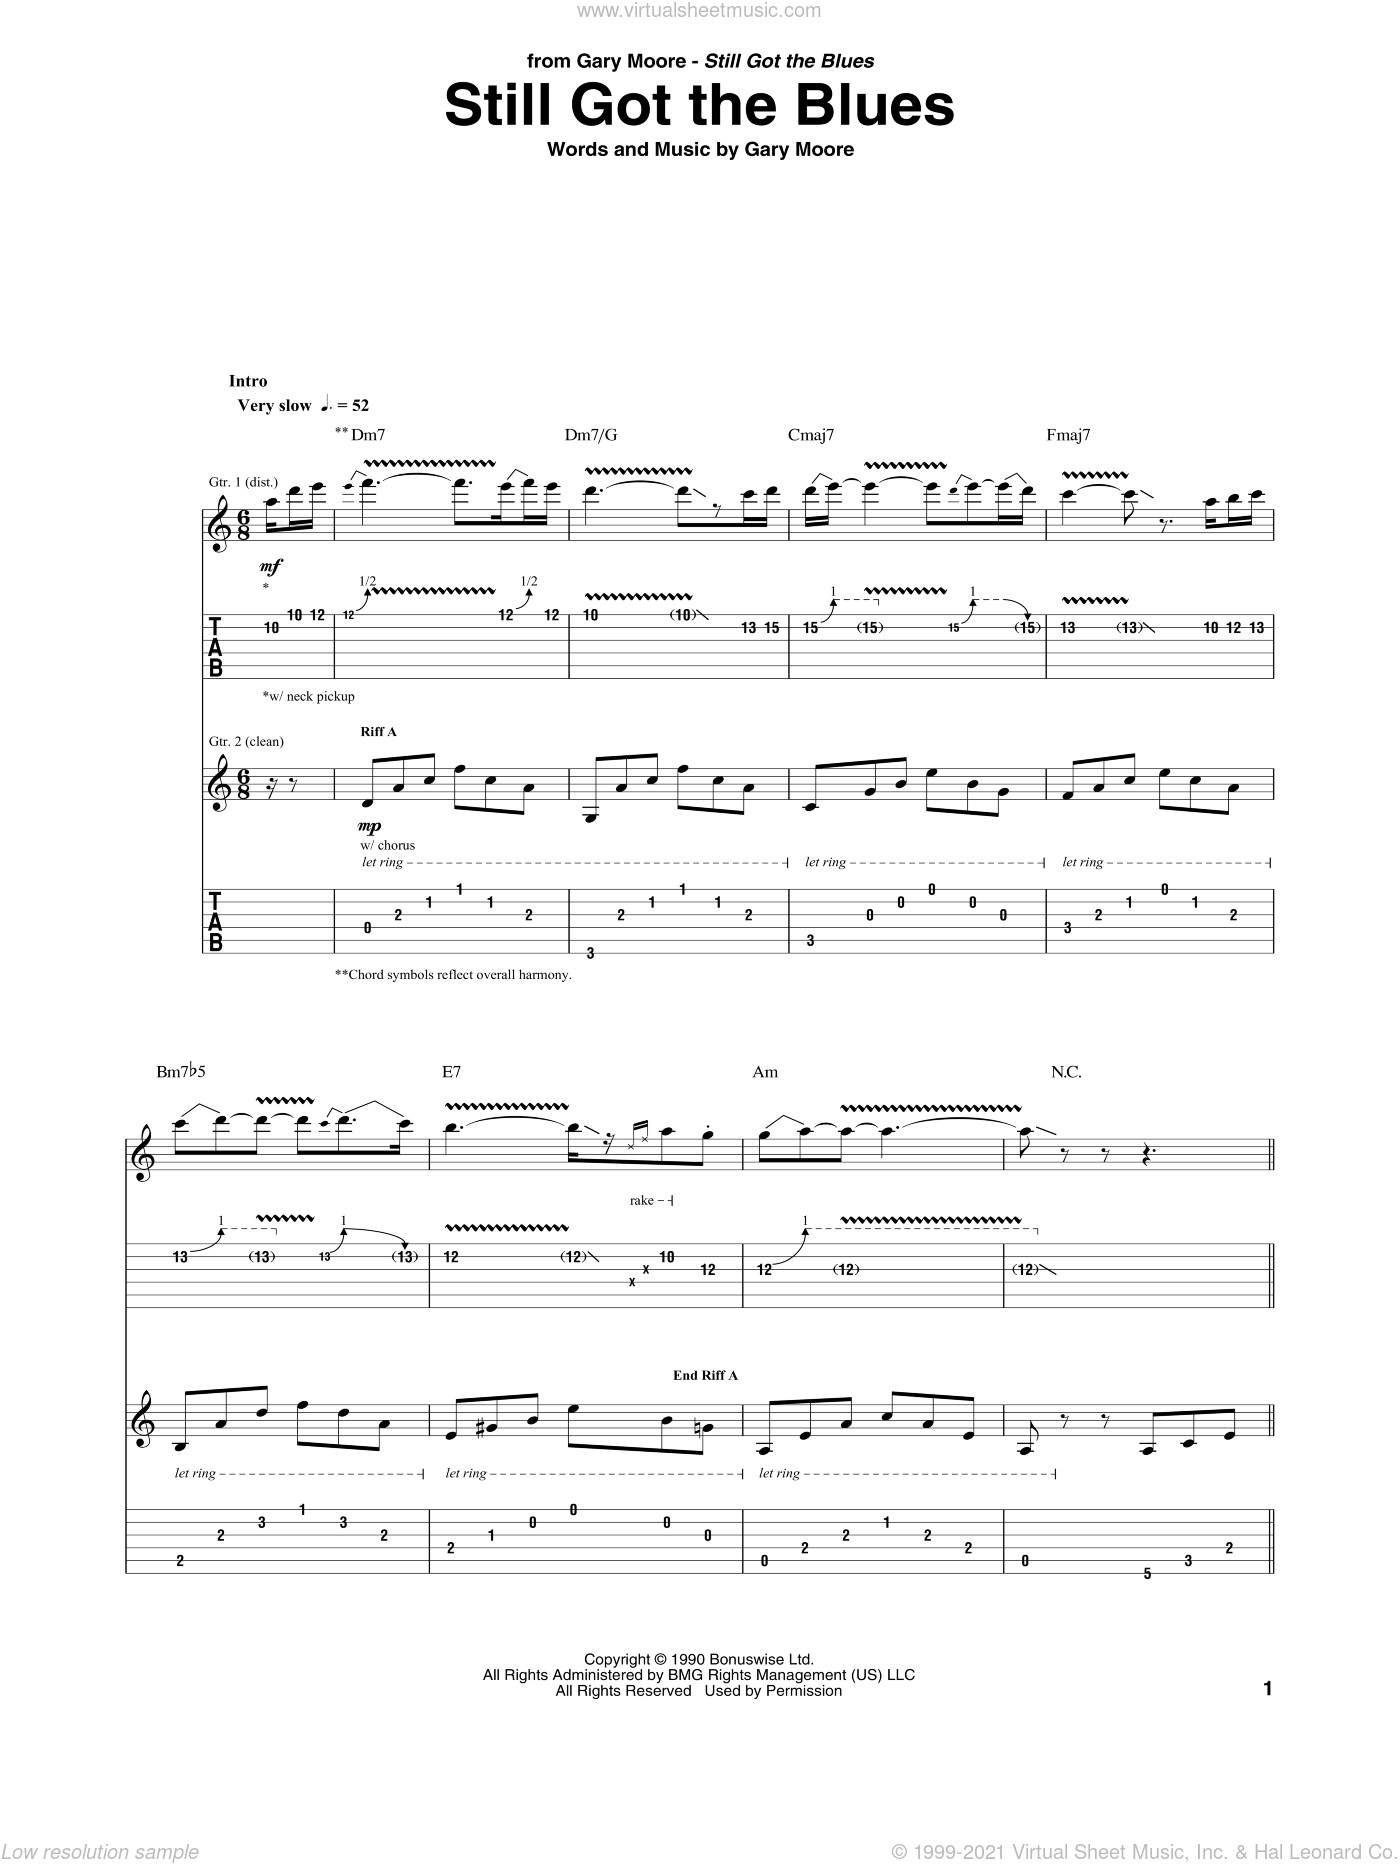 Still Got The Blues sheet music for guitar (tablature) by Gary Moore